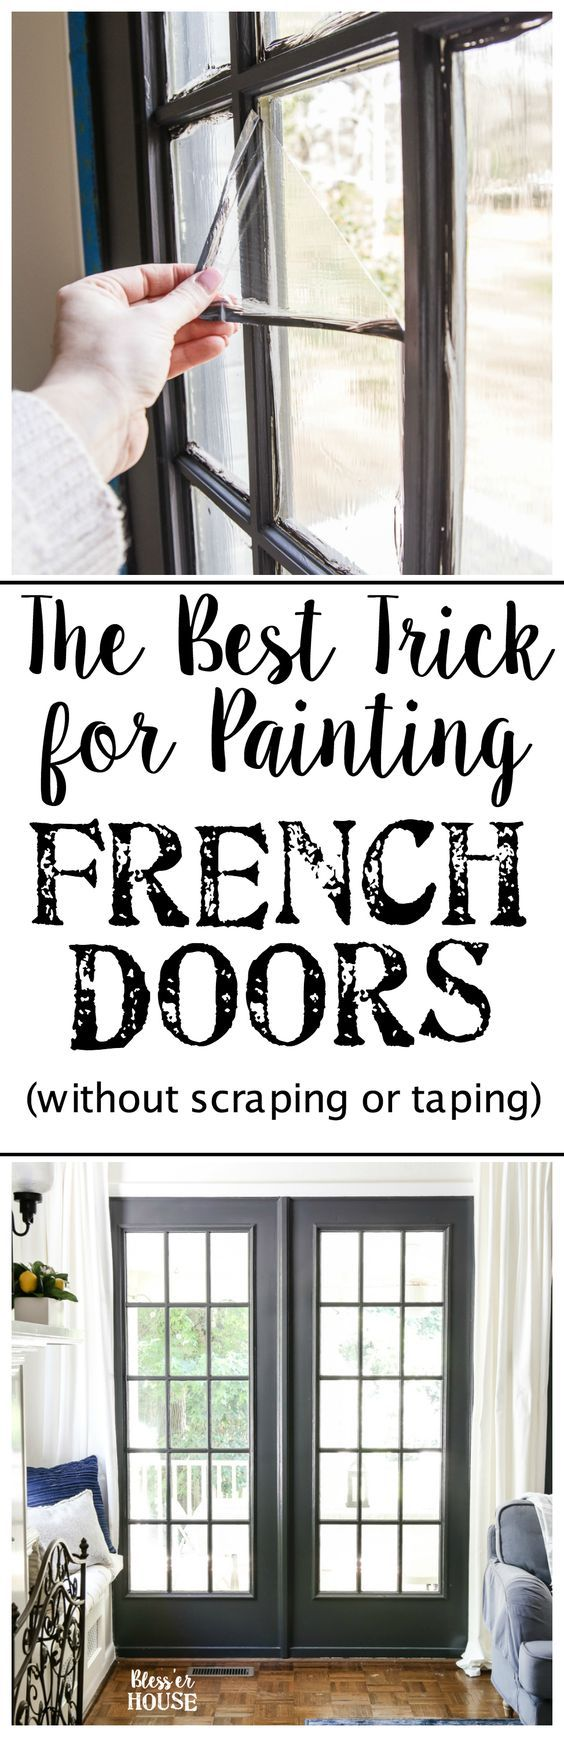 The Best Trick for Painting French Doors   blesserhouse-com - A quick tip for painting French doors without scraping, taping, or splotchy peeling paint. This trick saves SO much time and looks amazing like a factory finish! #paintingtips #diytips #frenchdoors